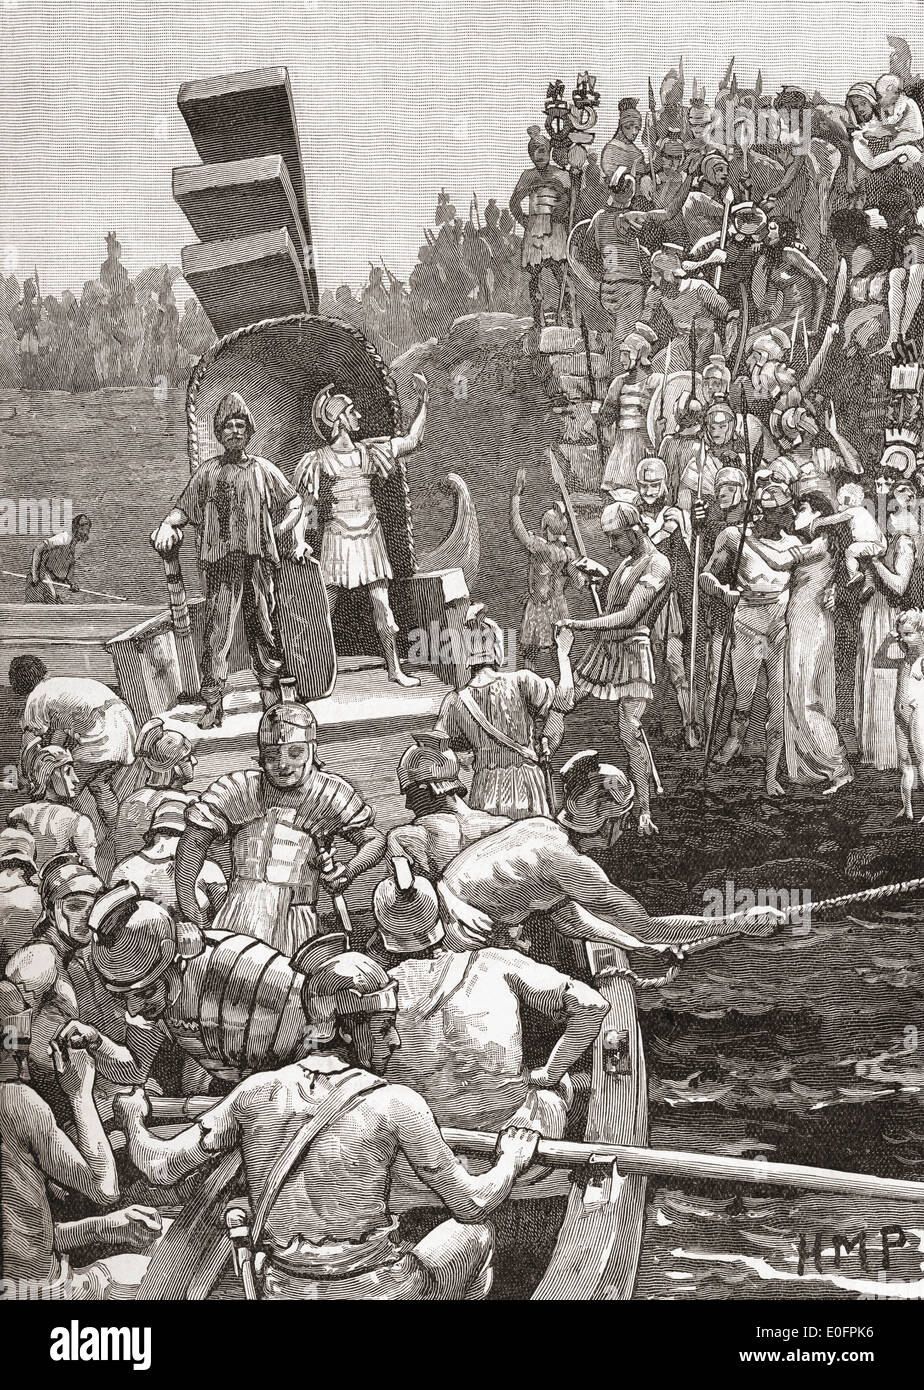 Roman soldiers leaving Briton in the 4th century. - Stock Image